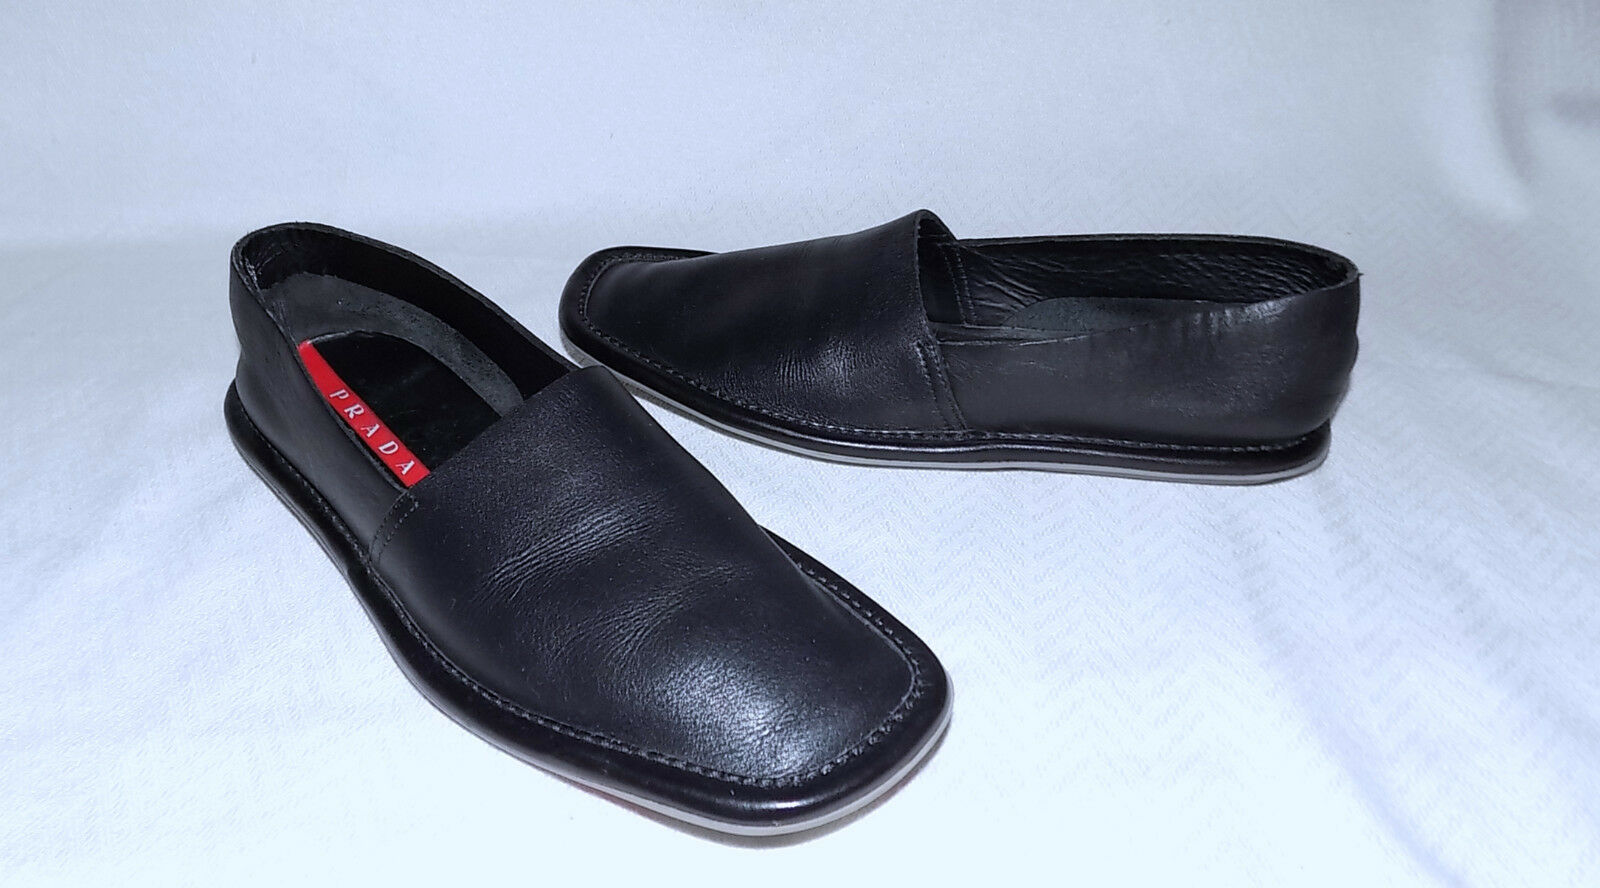 PRADA Genuine Leather Modern Flats Flats Flats Loafers-Size 35 5M-Black-Very Nice condition 5cebae